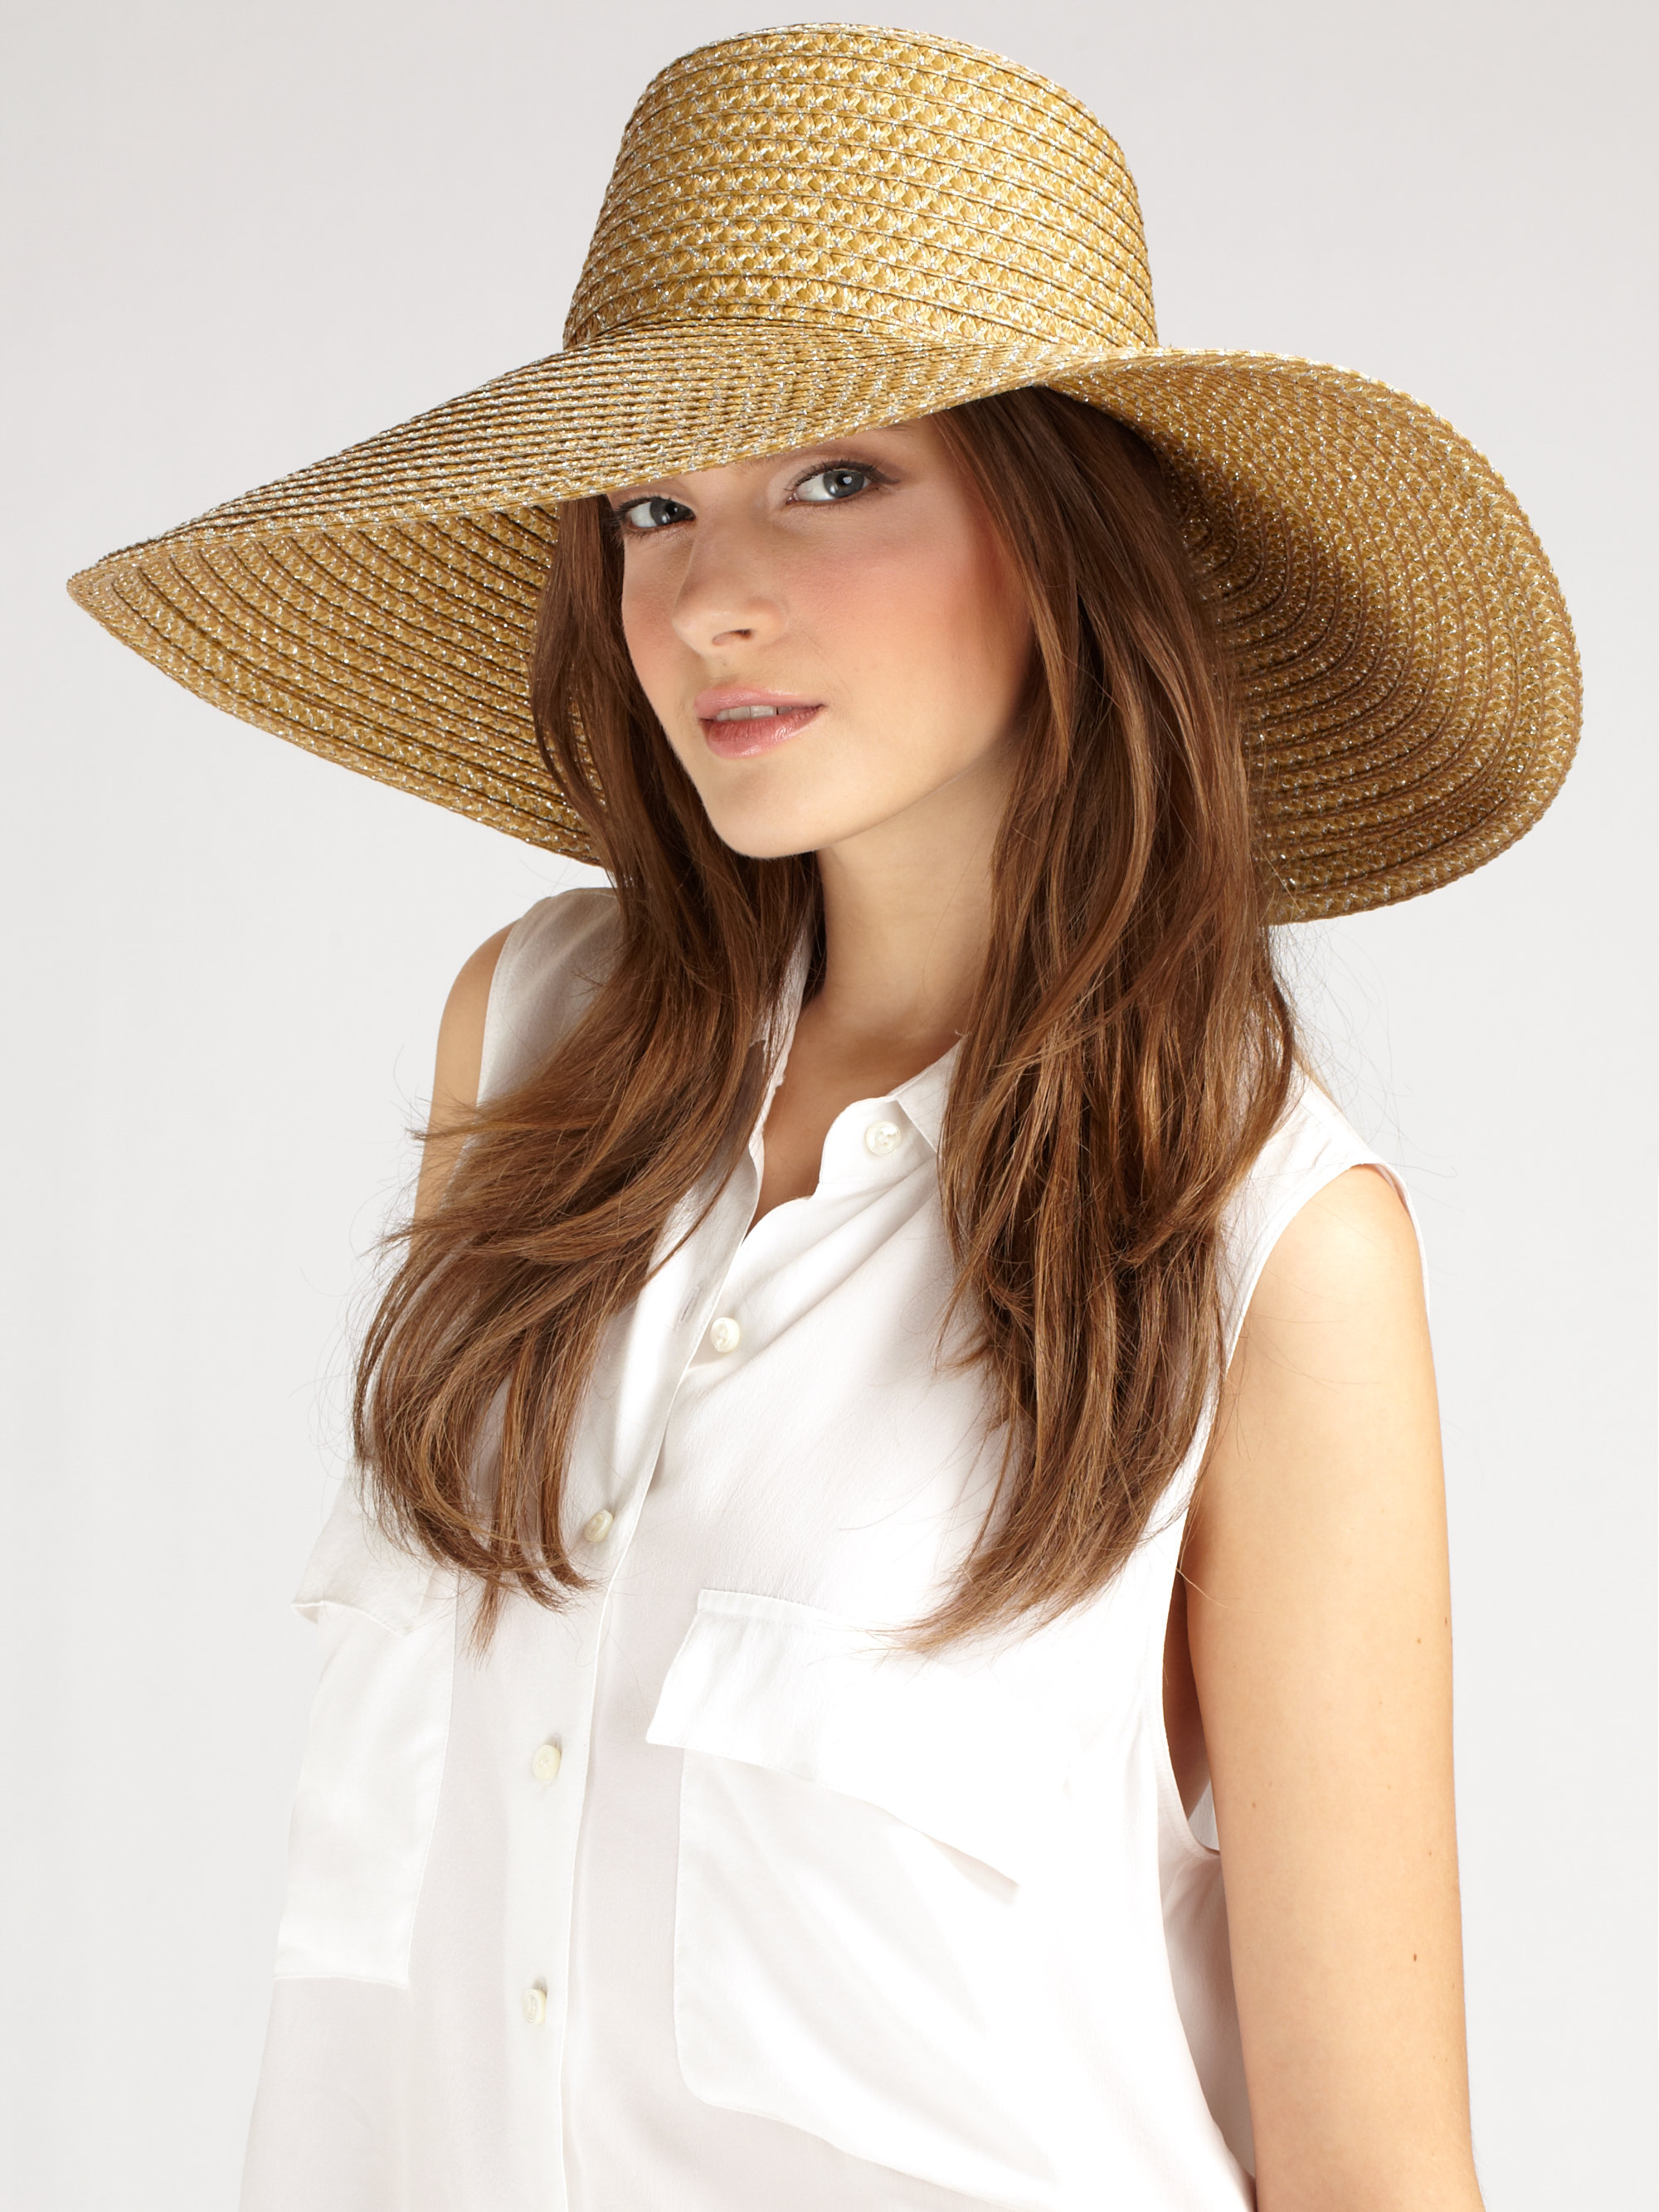 Lyst - Eric Javits Over-sized Floppy Hat in Natural 7b682557aaf4